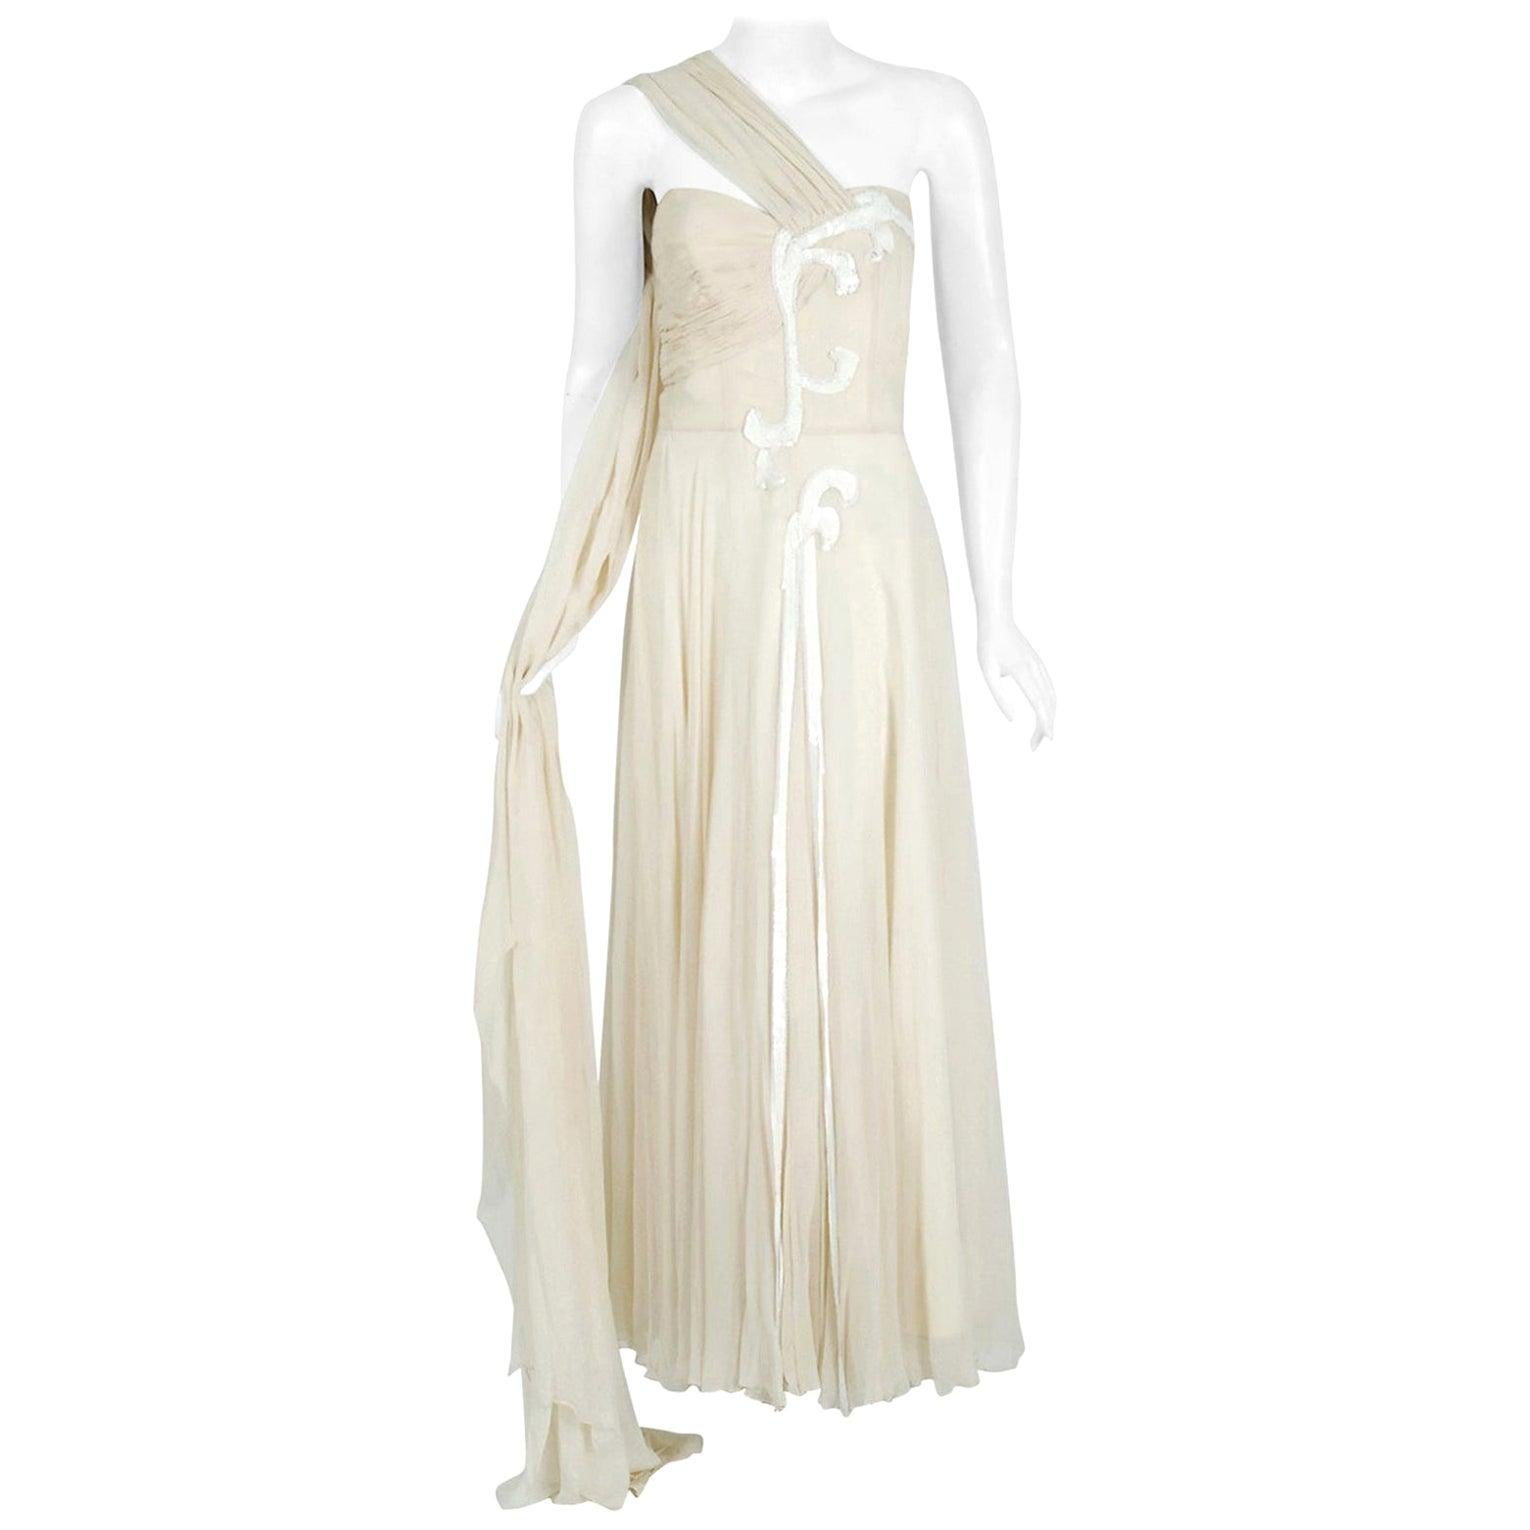 Vintage 1940's Saks Fifth Avenue Ivory Beaded Chiffon One-Shoulder Bridal Gown